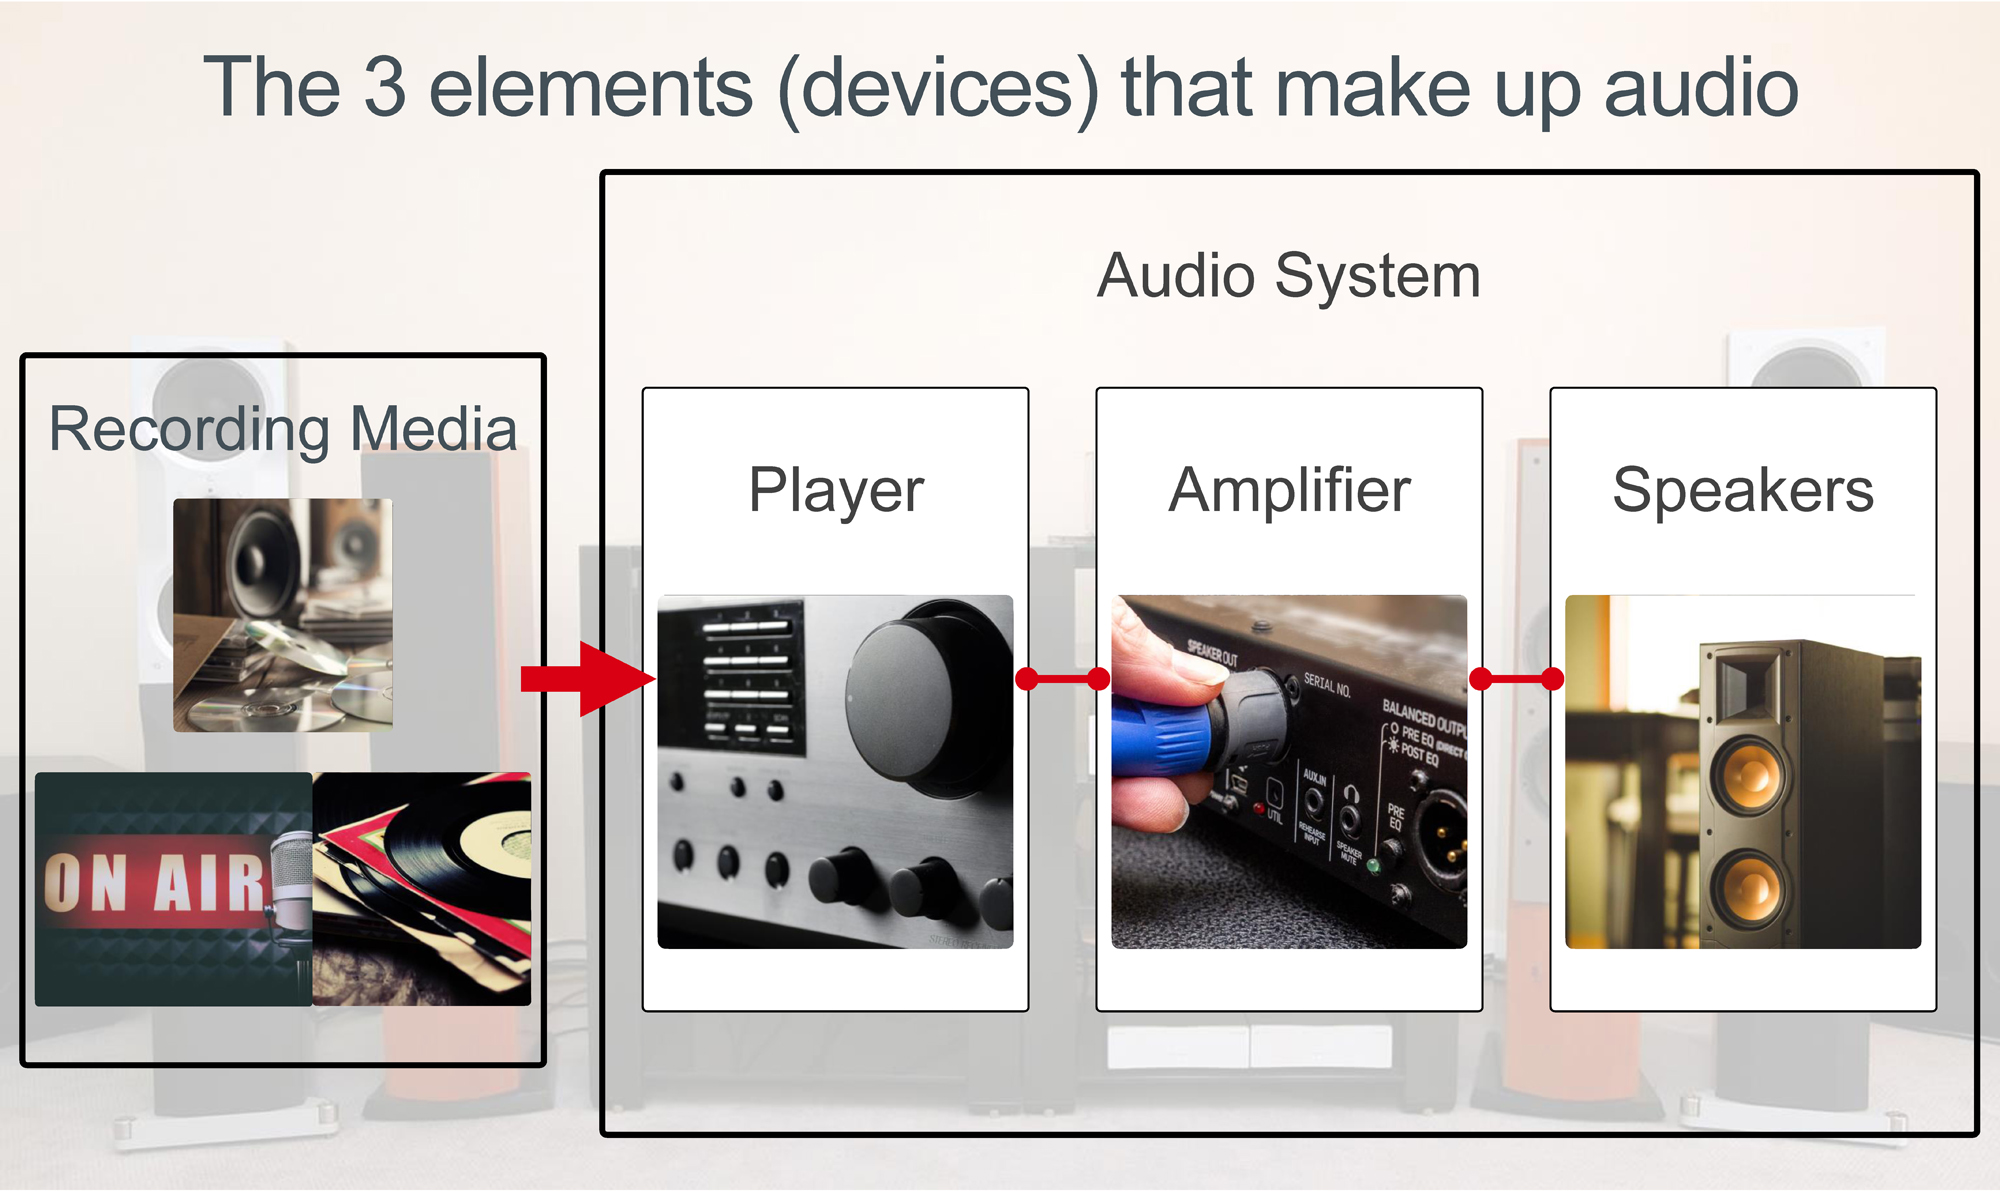 The 3 elements that make up audio